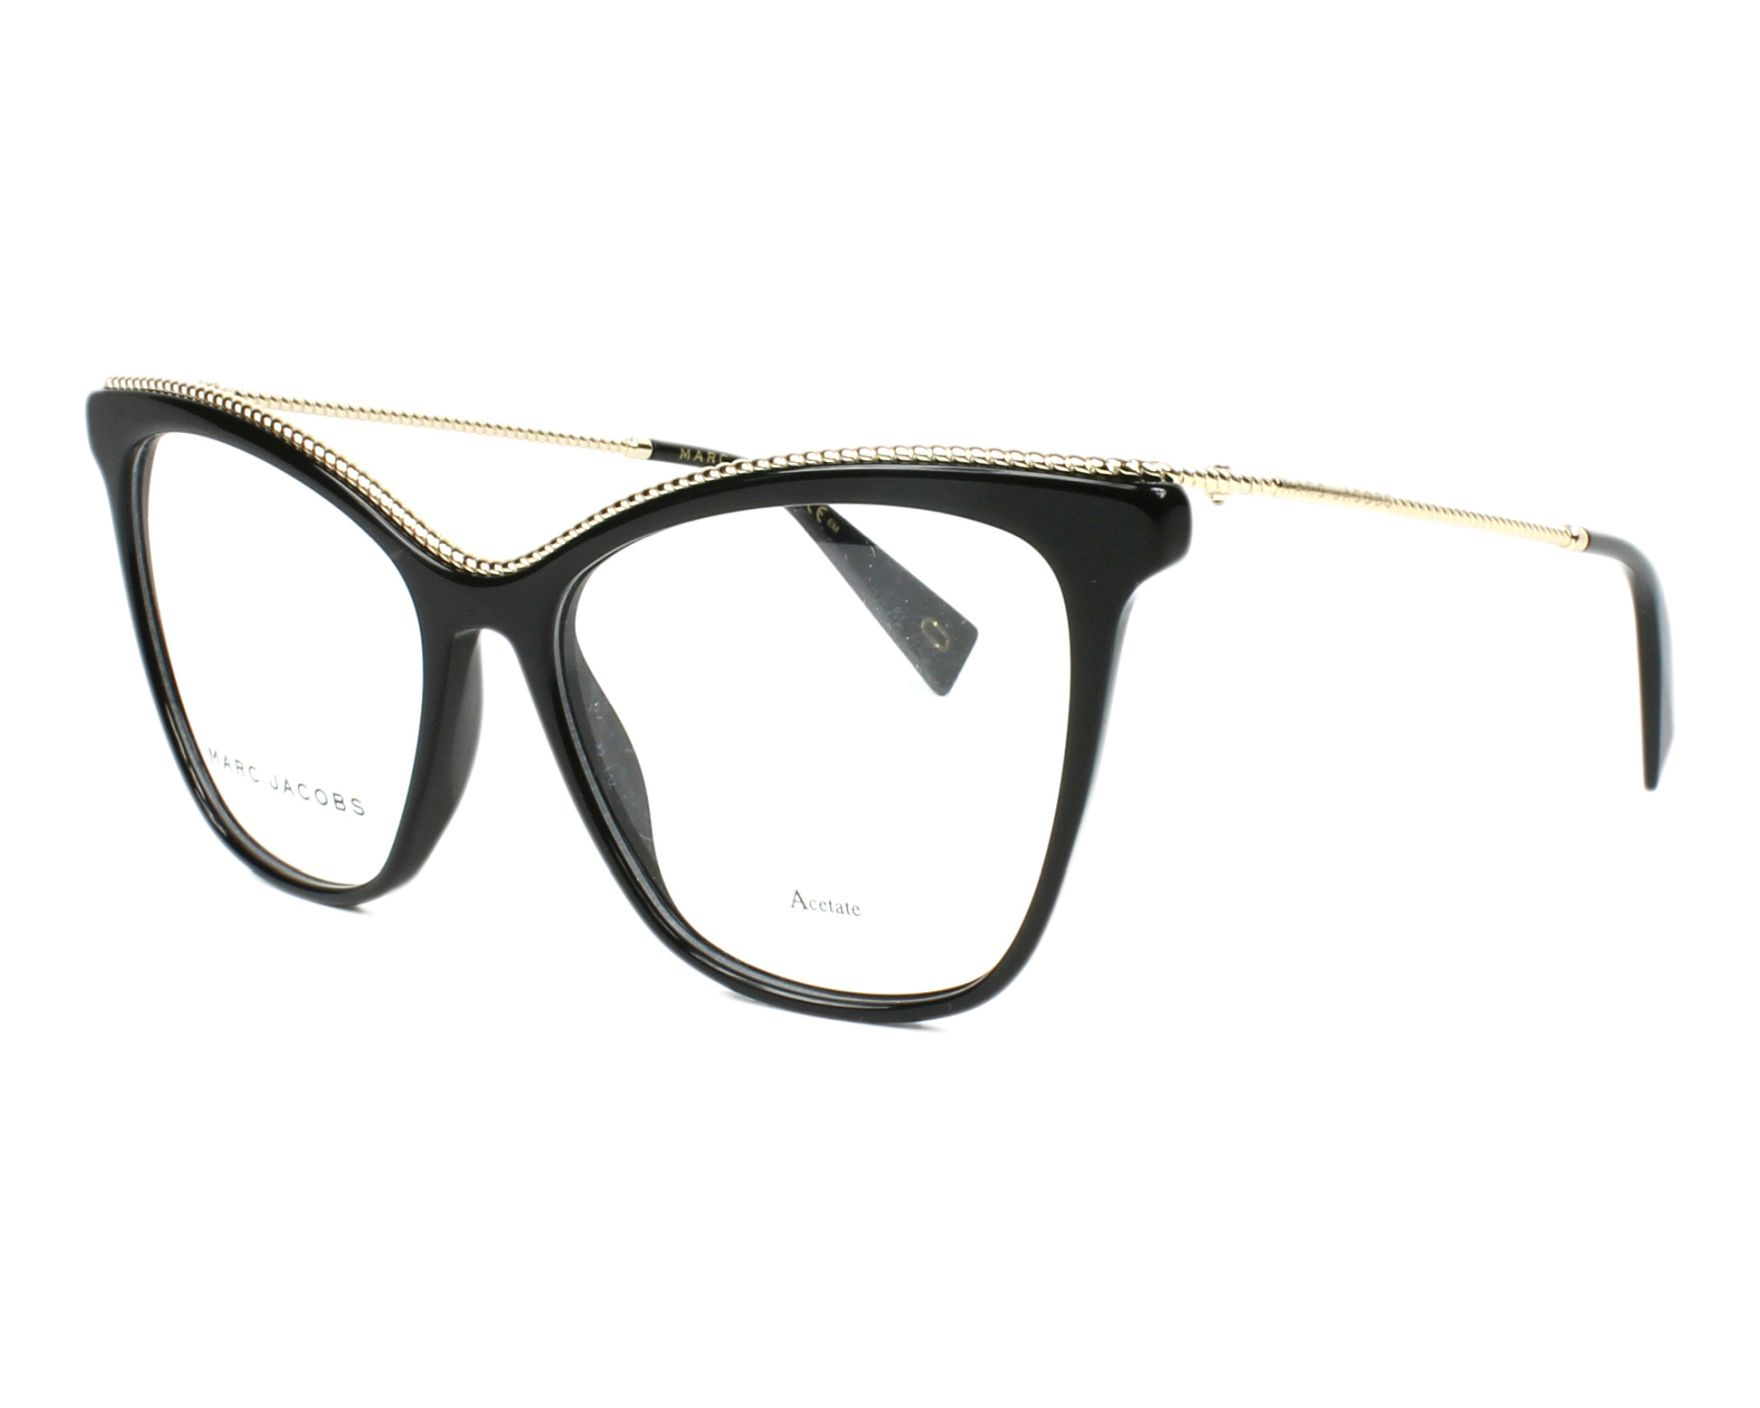 29a335ec02 eyeglasses Marc Jacobs MARC-166 807 54-16 Black Gold profile view